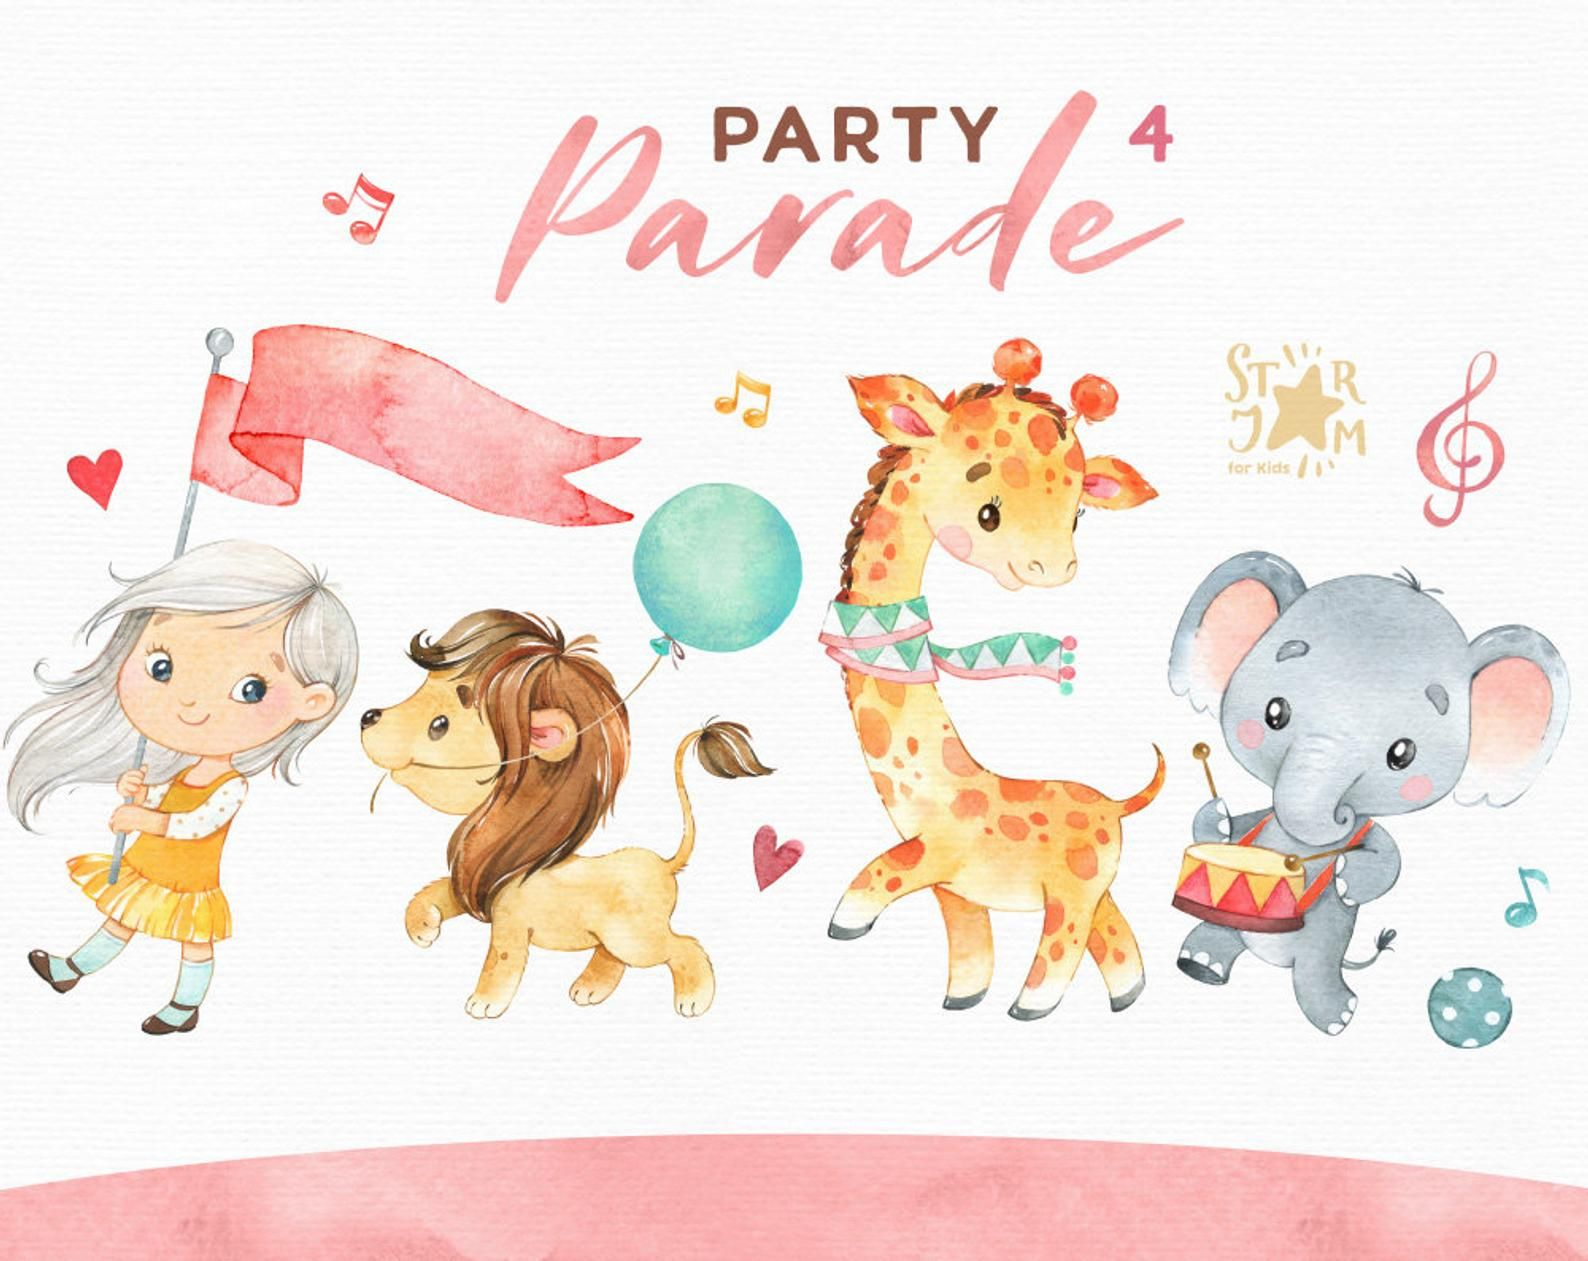 Party Parade 4 Watercolor Clipart Girl Animals Giraffe Etsy In 2021 Watercolor Clipart Clip Art Cute Illustration